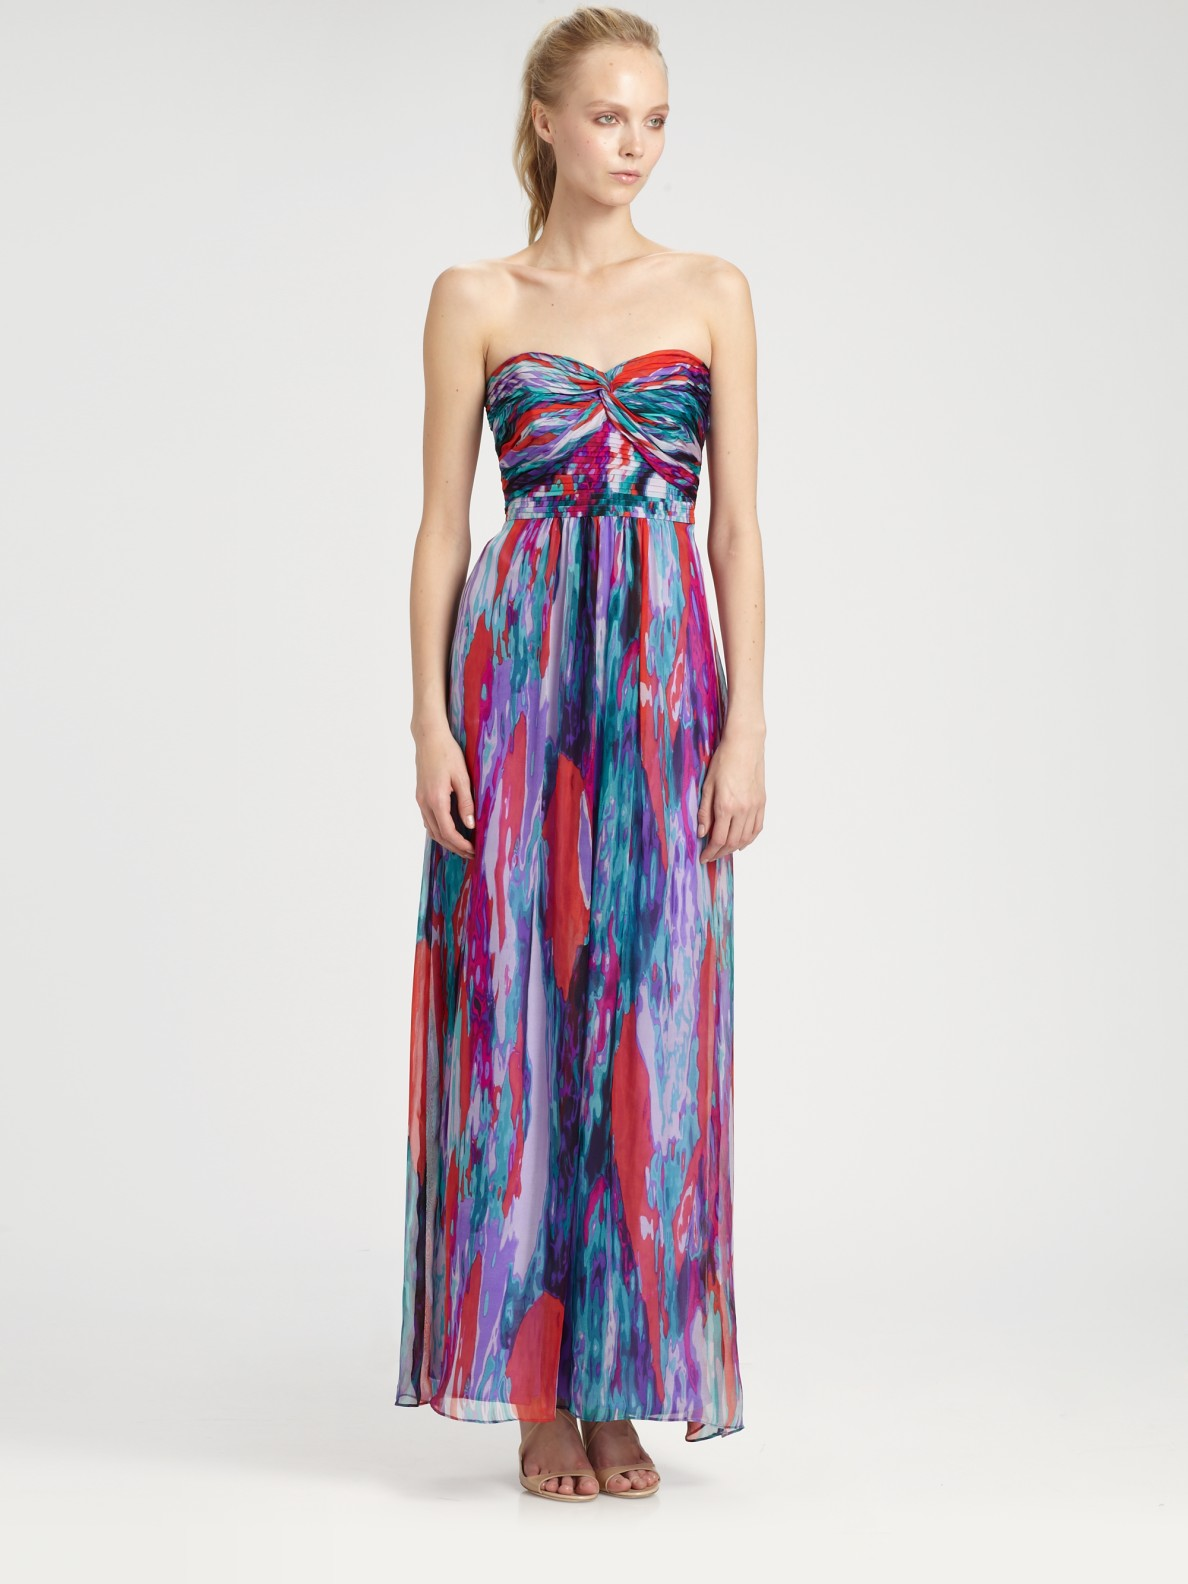 Laundry by Shelli Segal Evening Gowns